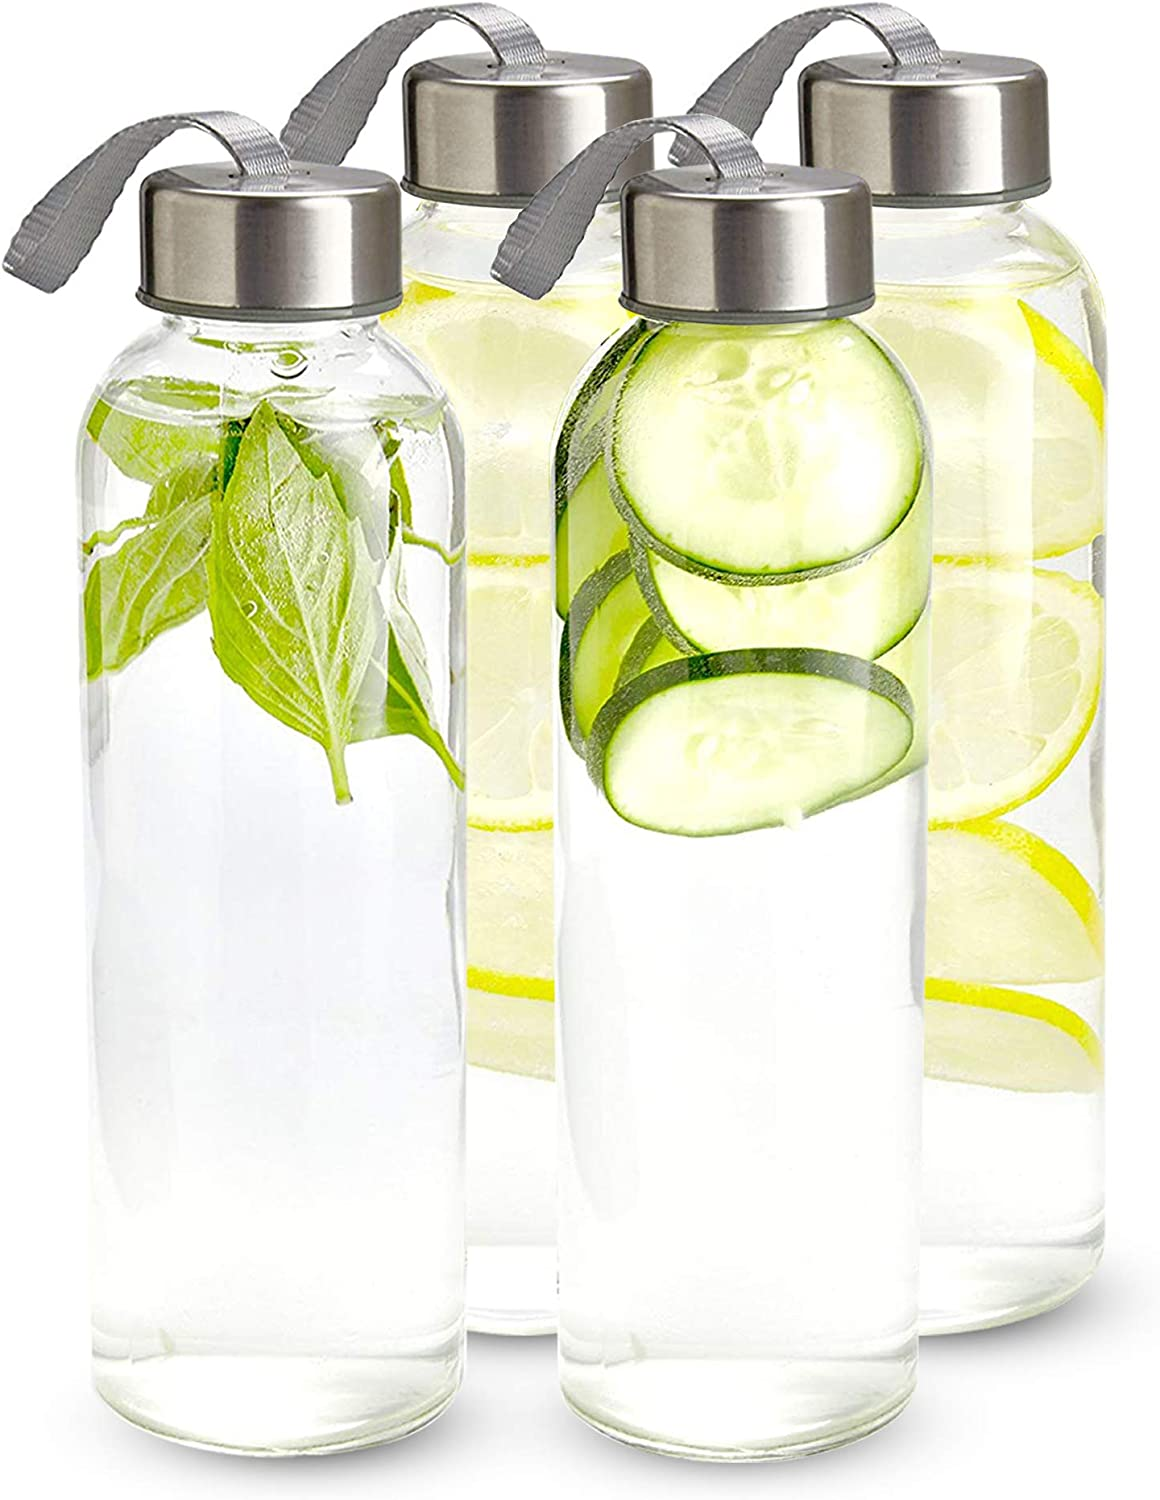 Individual Protection Sleeve Included 6 pack Stainless Steel Leak proof Caps with Carrying Loop Chefs Star Clear Glass Water Bottle 18 oz Bottles For Fresh Juice /& Beverages Storage